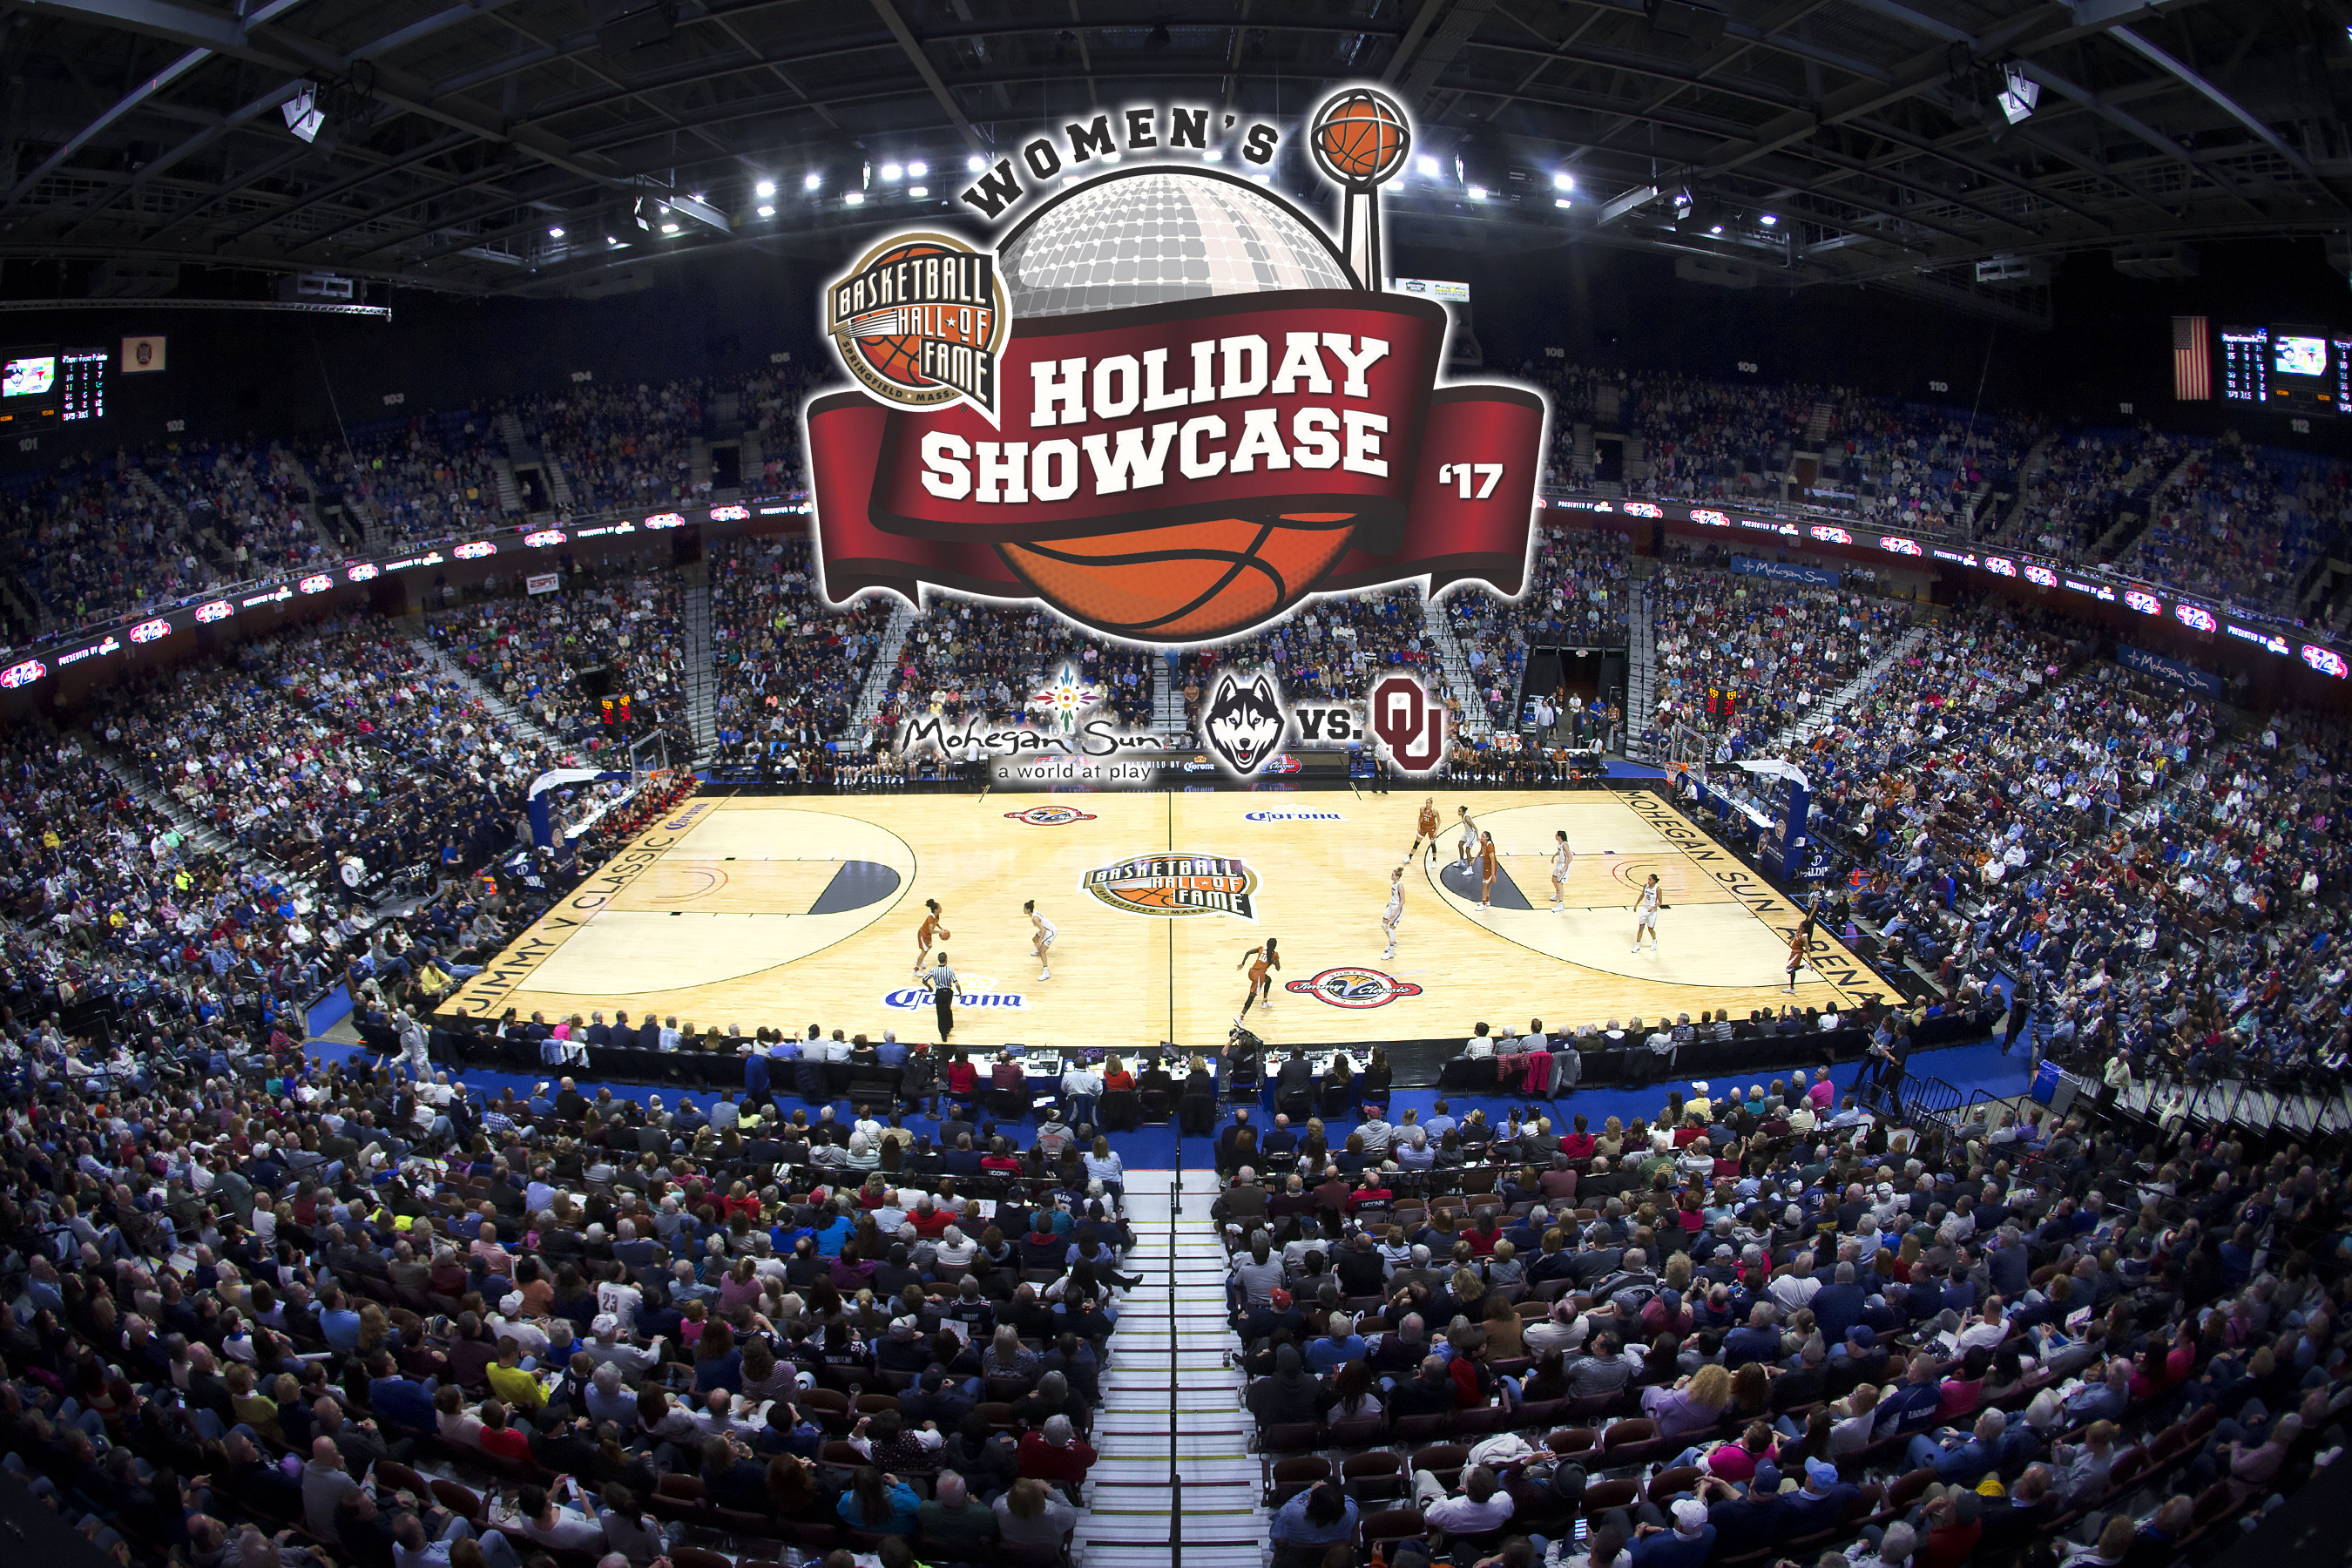 buy online 9262f 0705d Hall of Fame Women s Holiday Showcase to Feature UConn and Oklahoma - UConn  Huskies   University of Connecticut Athletics